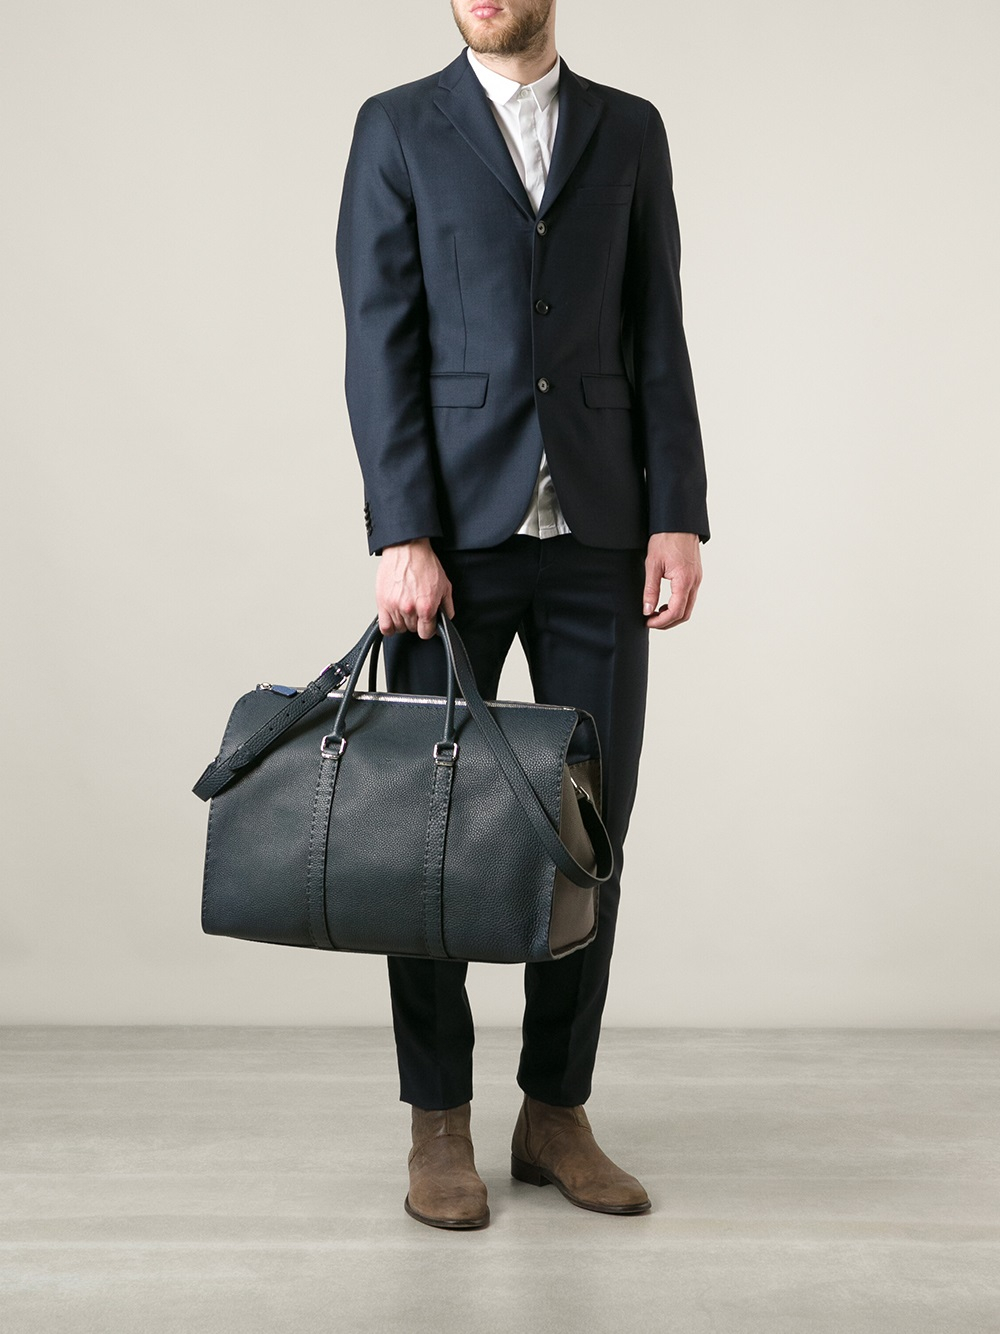 08155f278f49 ... purchase lyst fendi selleria weekend bag in blue for men d6fa2 2b10e